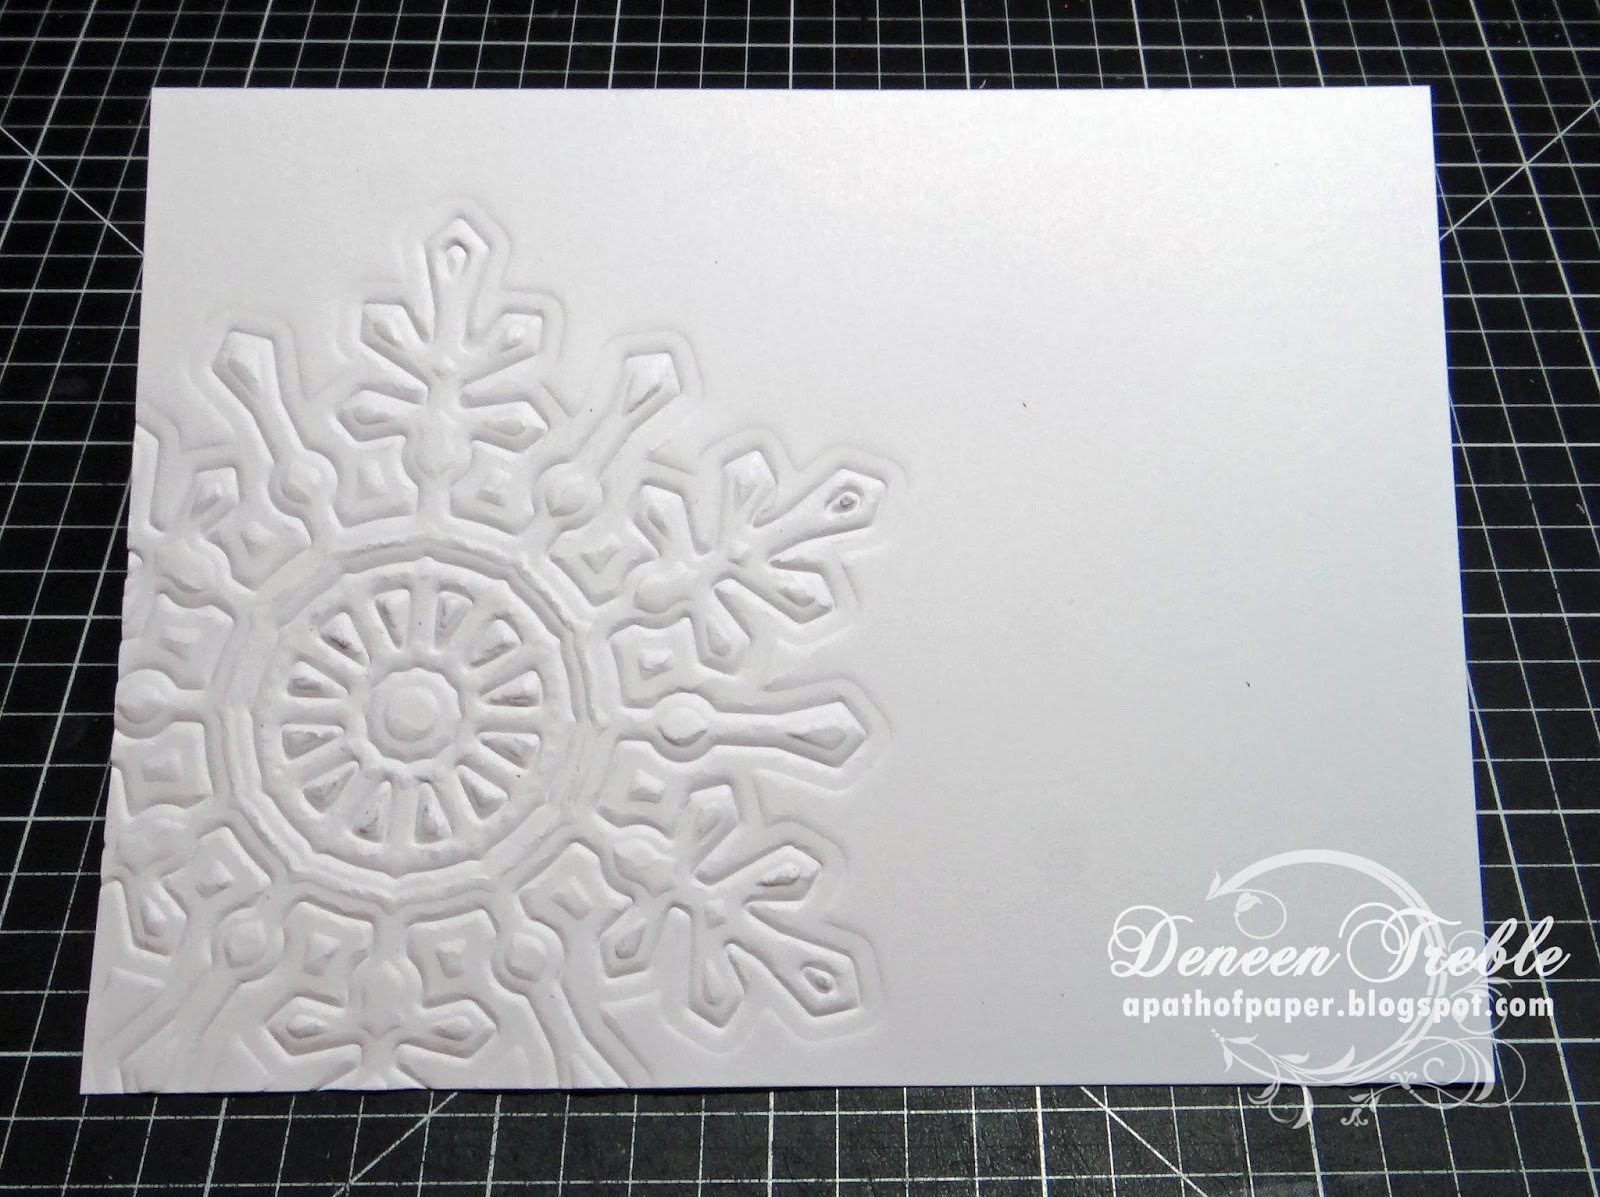 Custom embosser: Choose your custom embossing stamp